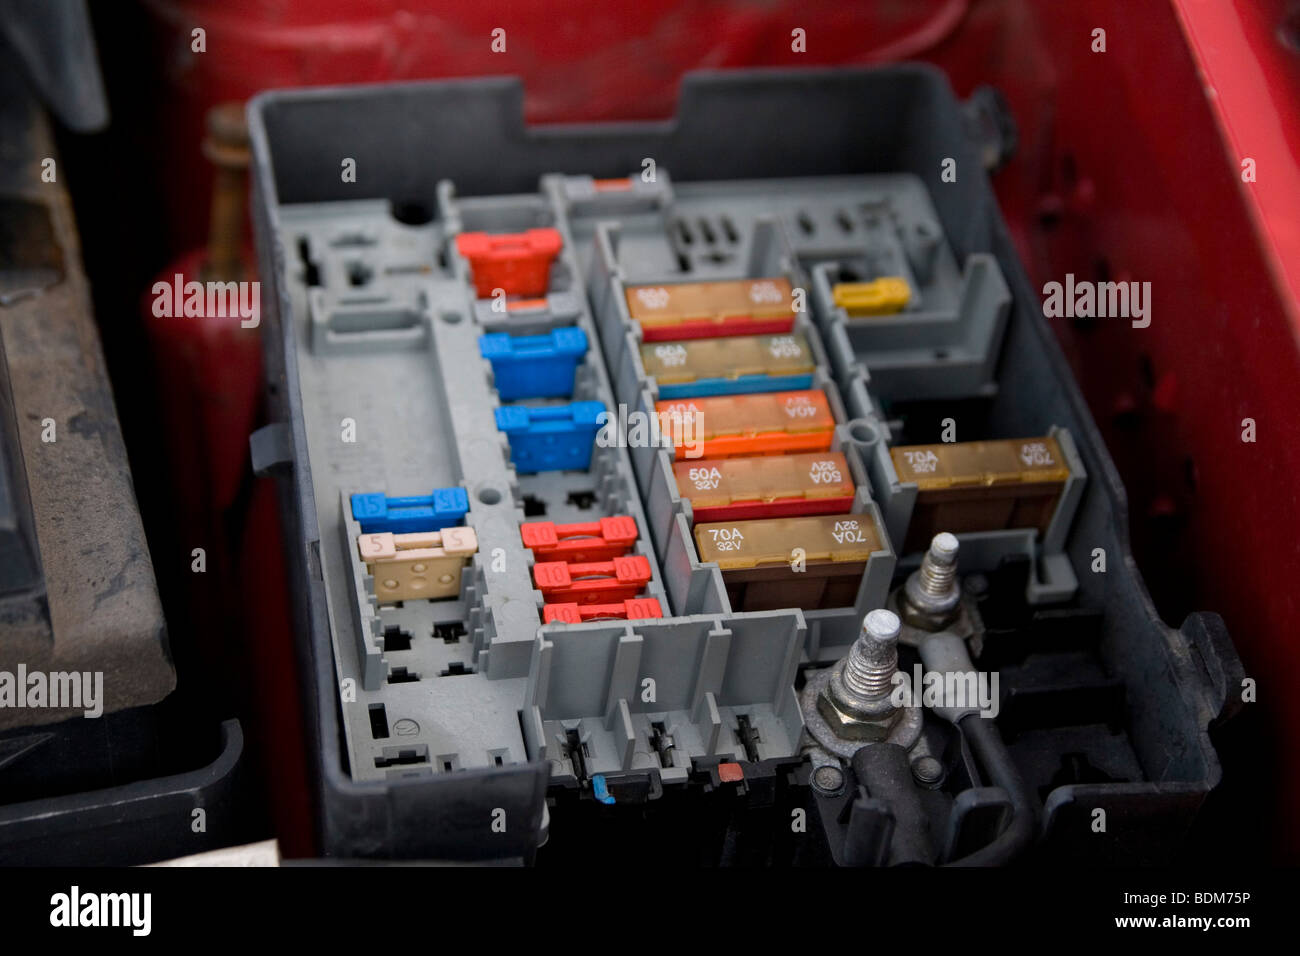 citroen berlingo fuse box BDM75P citroen berlingo fuse box stock photo, royalty free image water in fuse box car at aneh.co